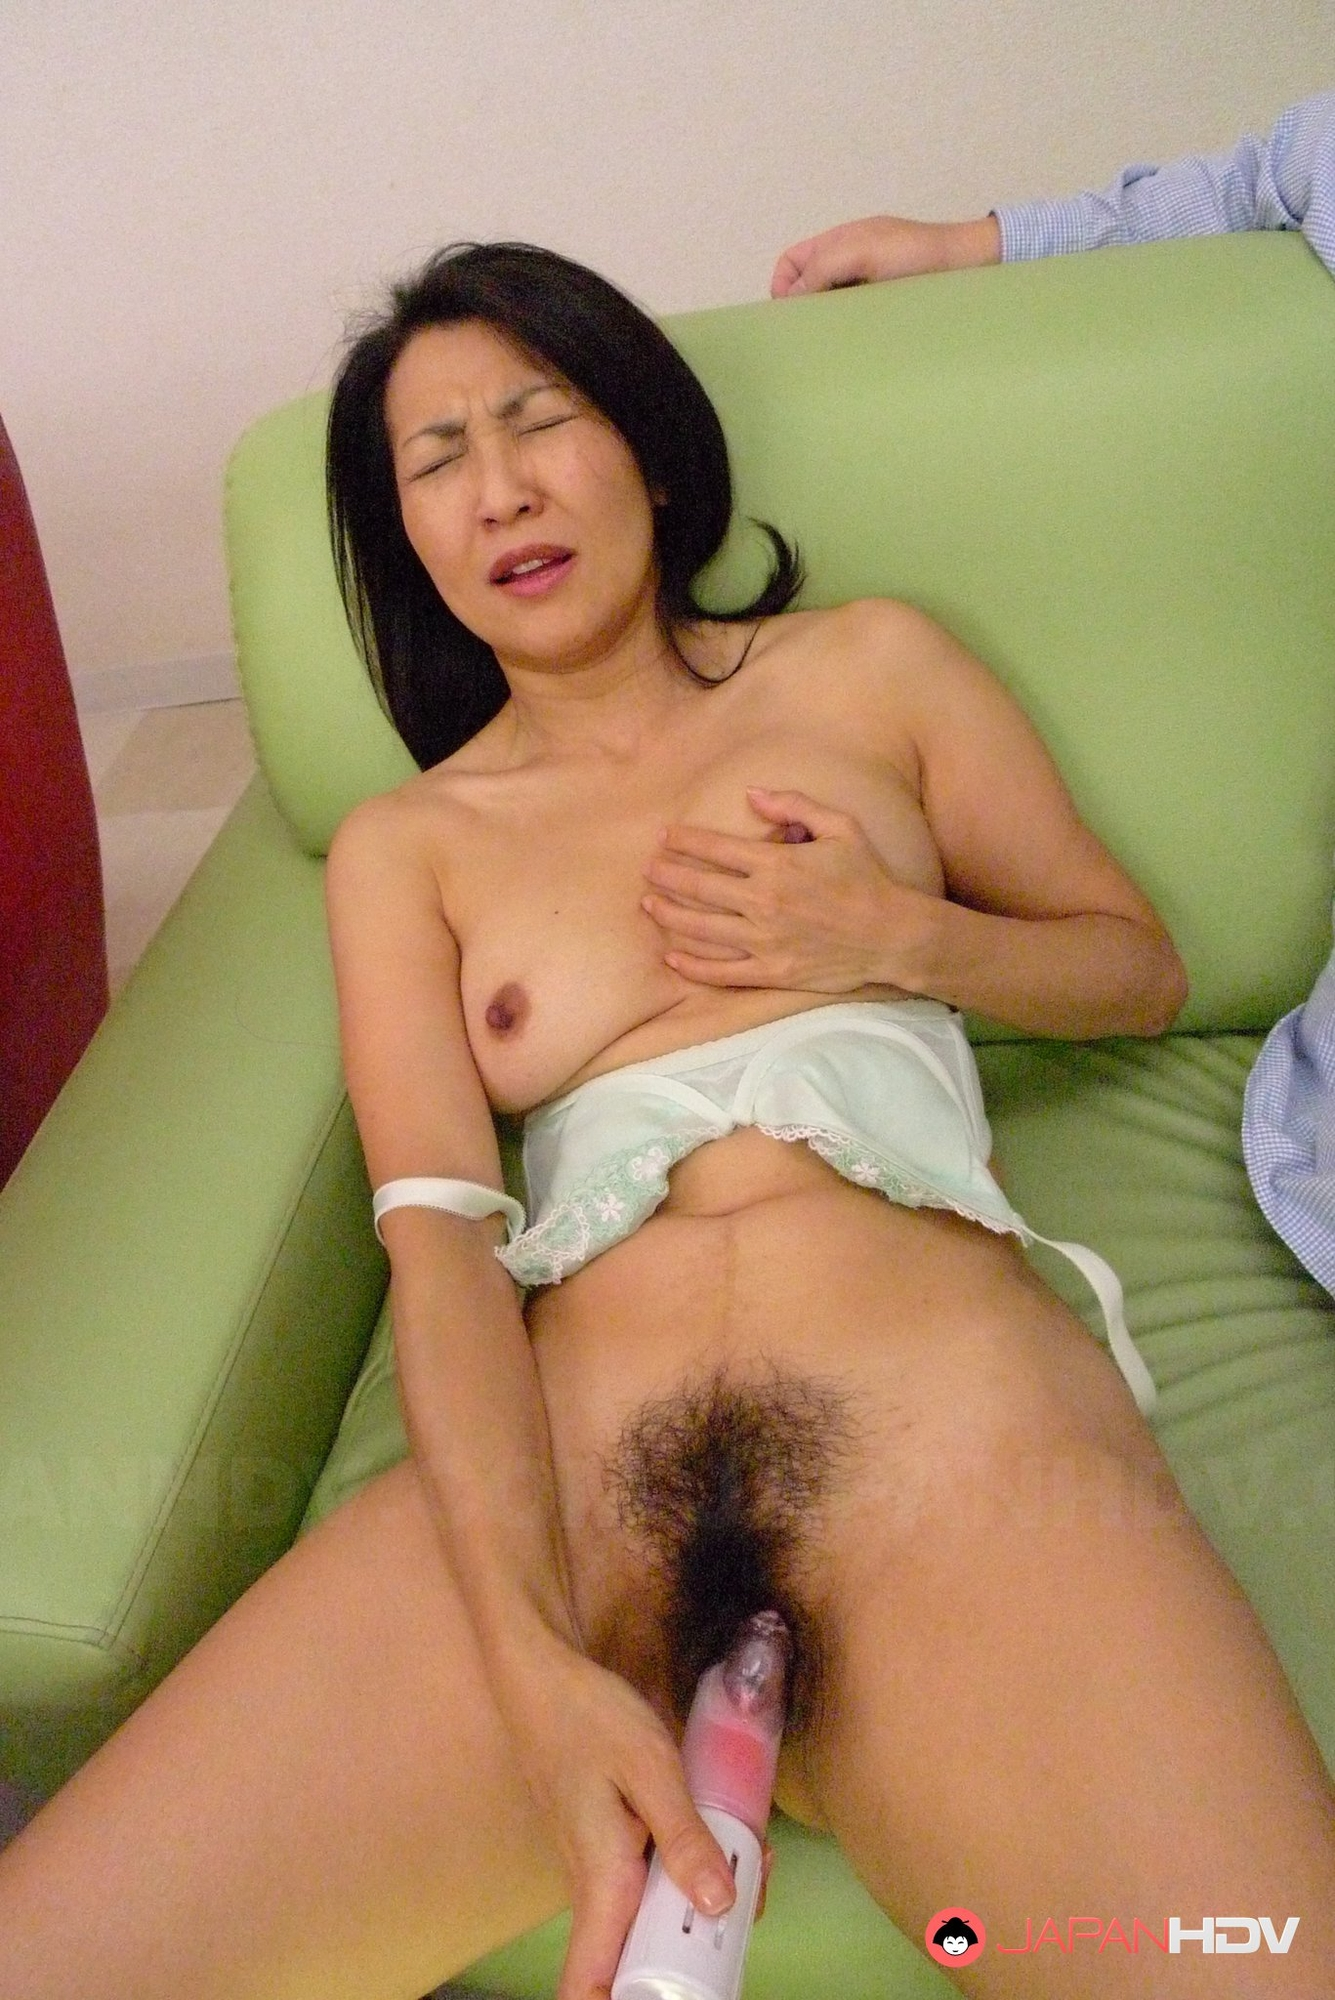 Xxx asian milf picture